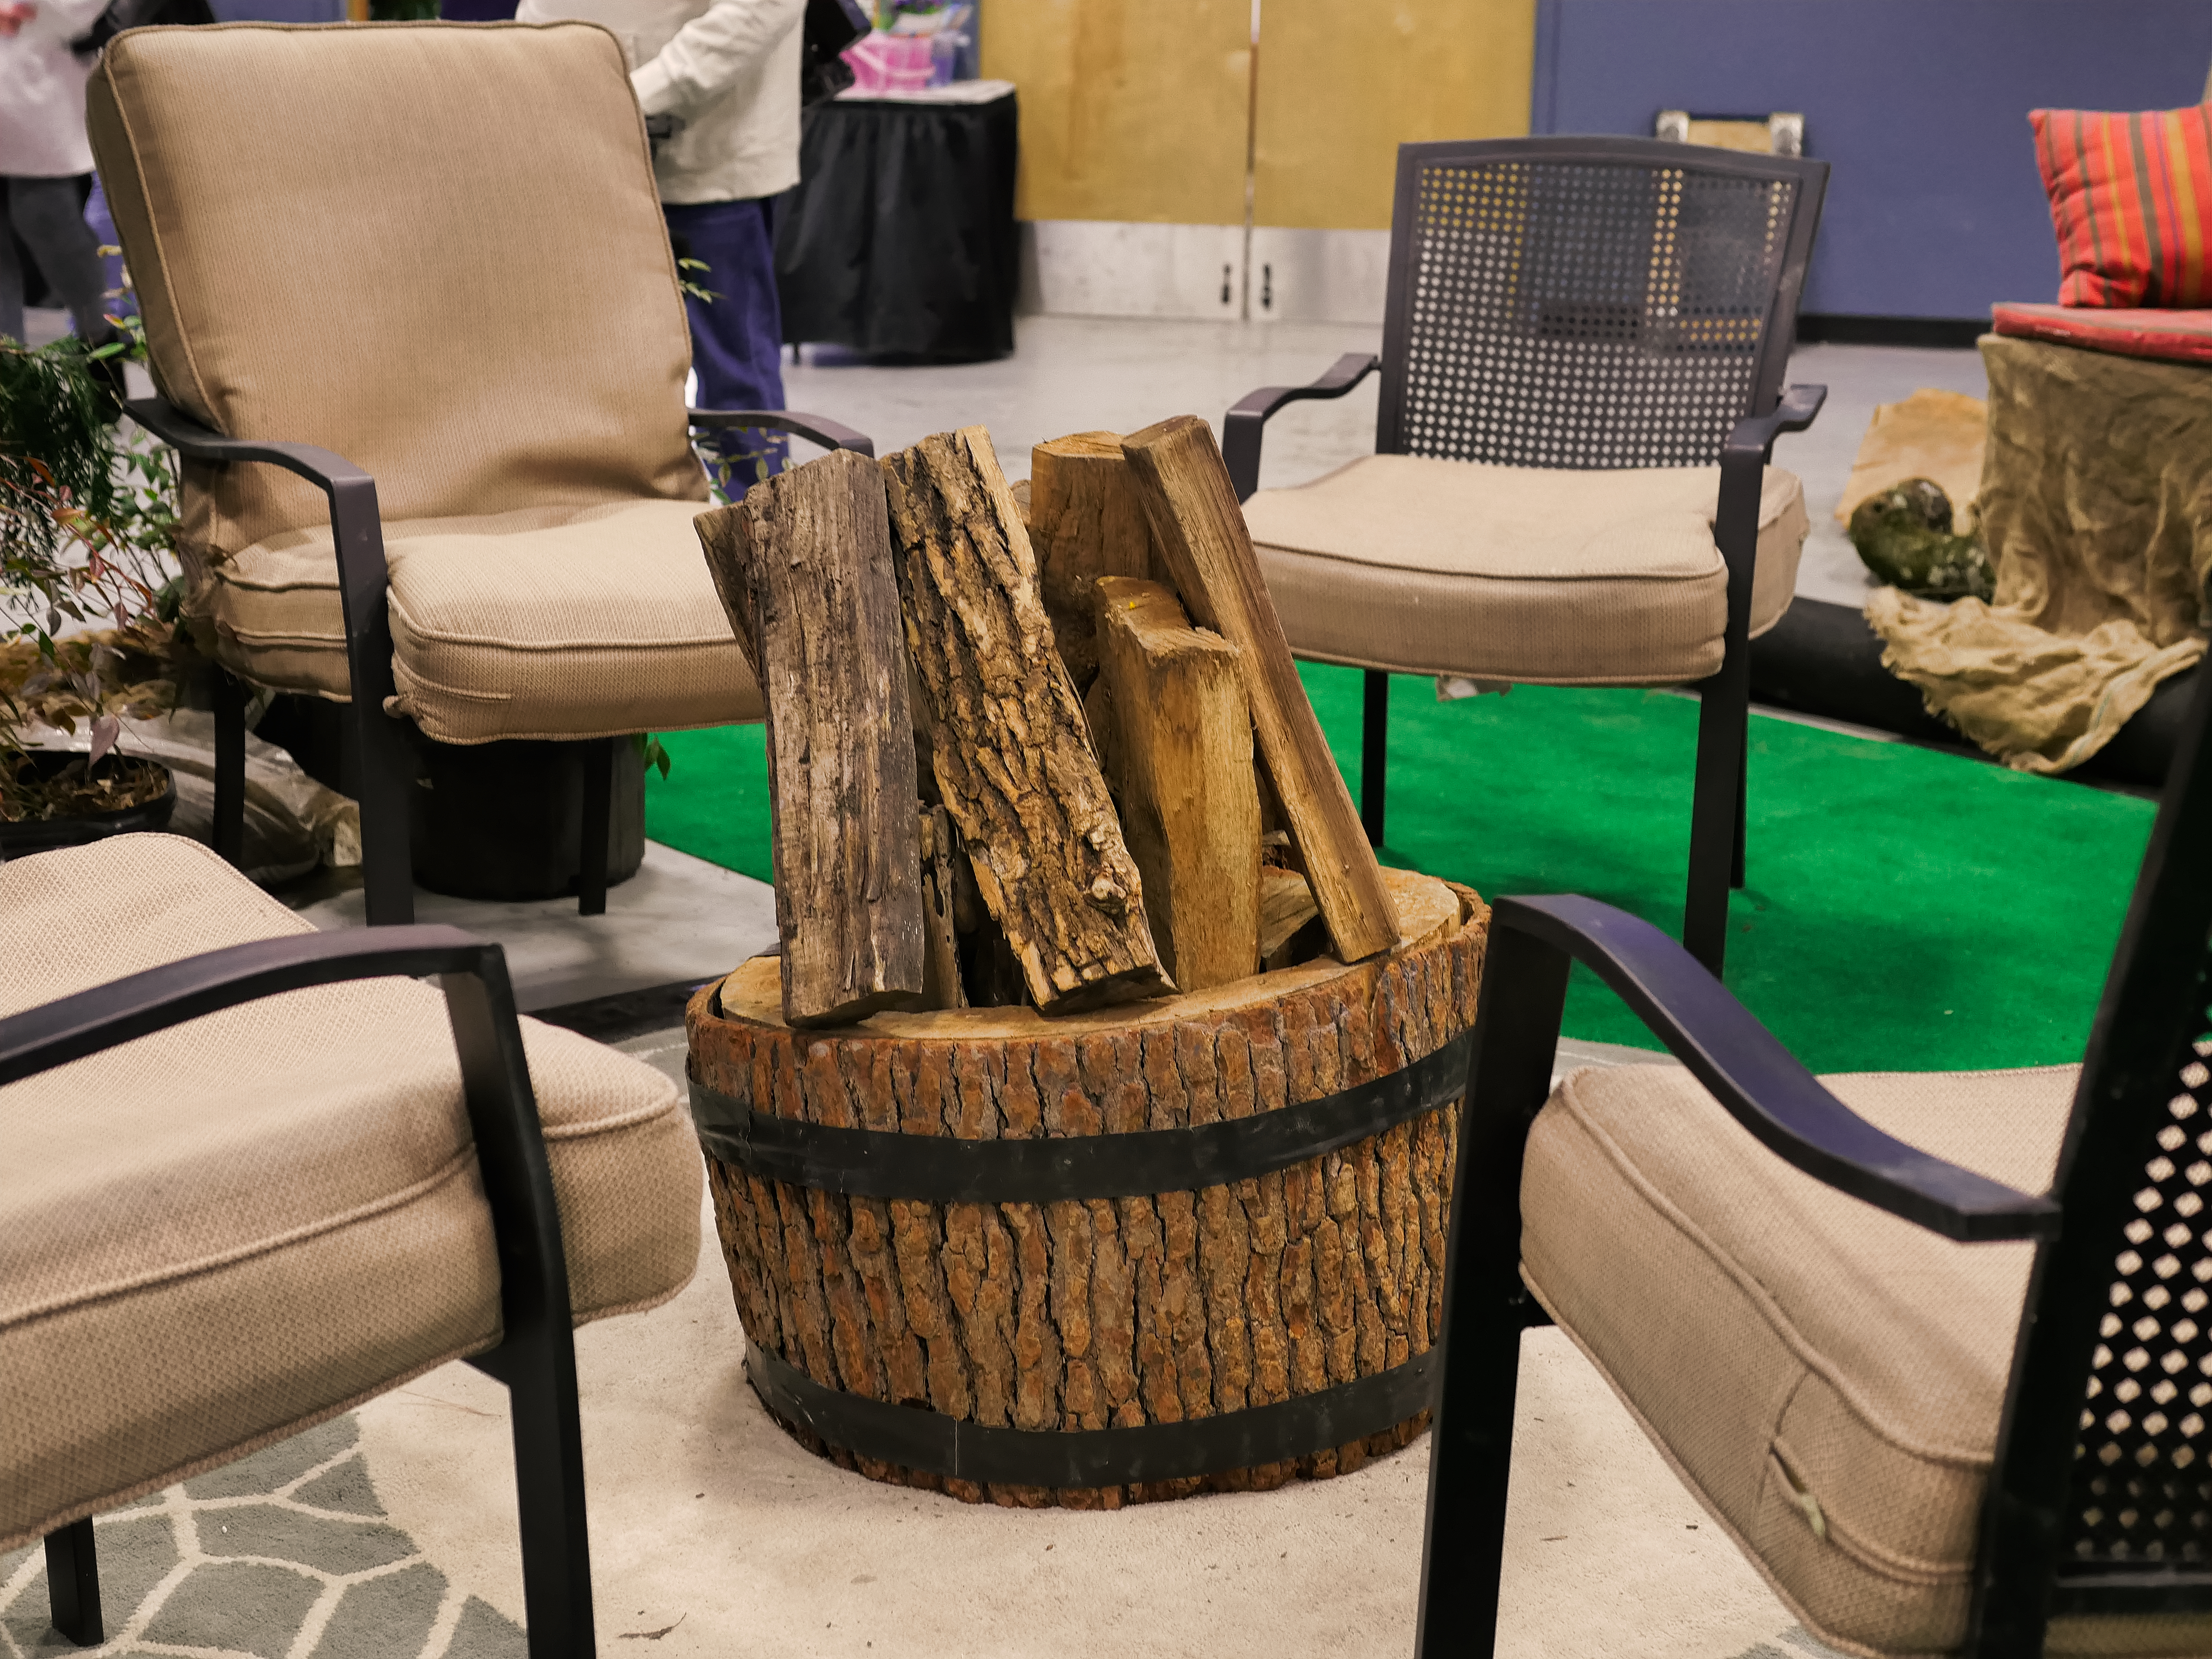 Super Learn About Exhibiting Edison Nj Feb 22 24 2019 Caraccident5 Cool Chair Designs And Ideas Caraccident5Info